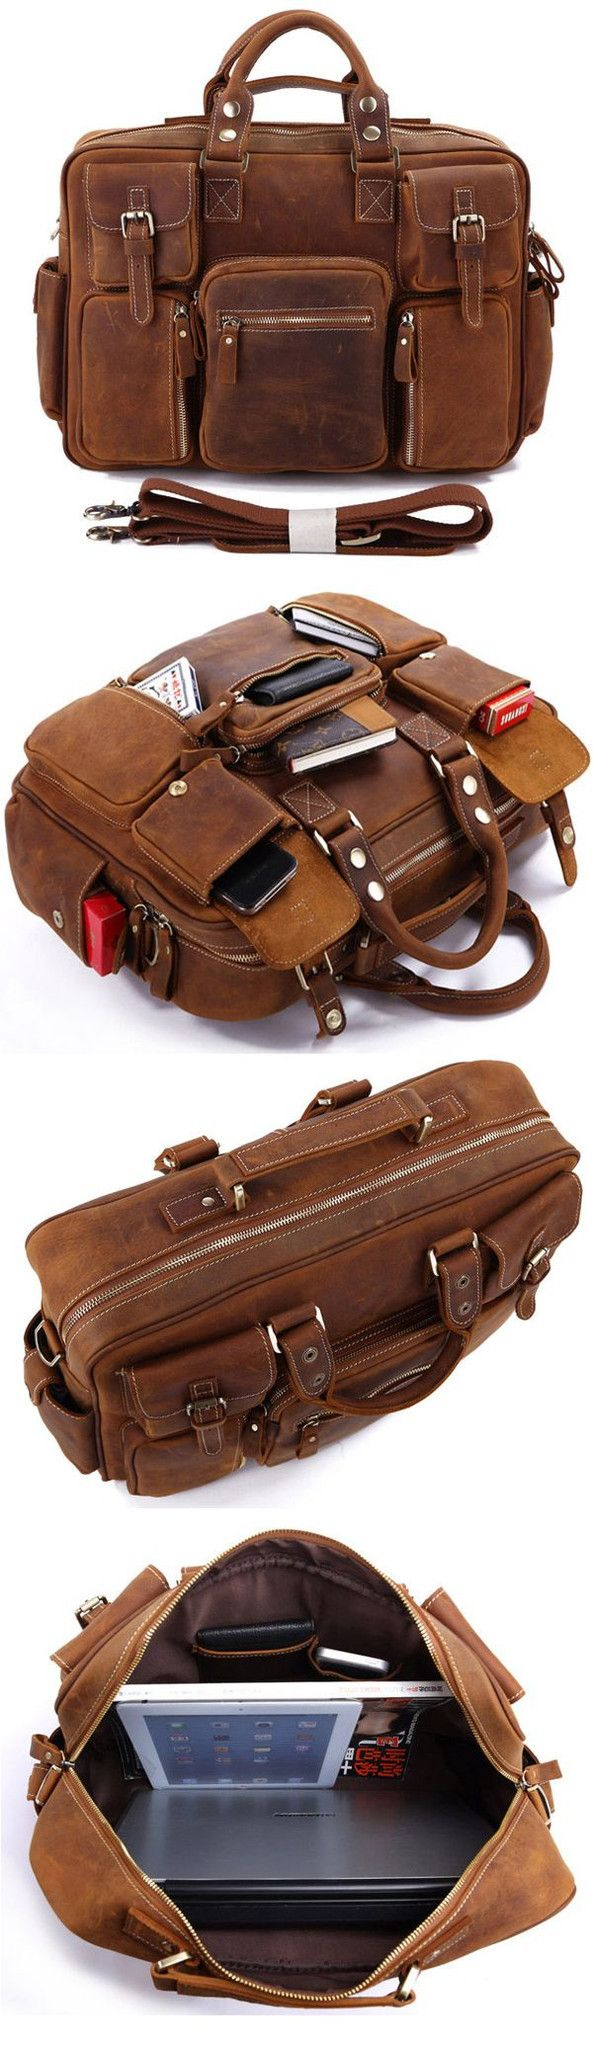 Vintage Leather Briefcase Handmade Genuine Dispatch Travel Bag #Cybermonday #Christmasgift